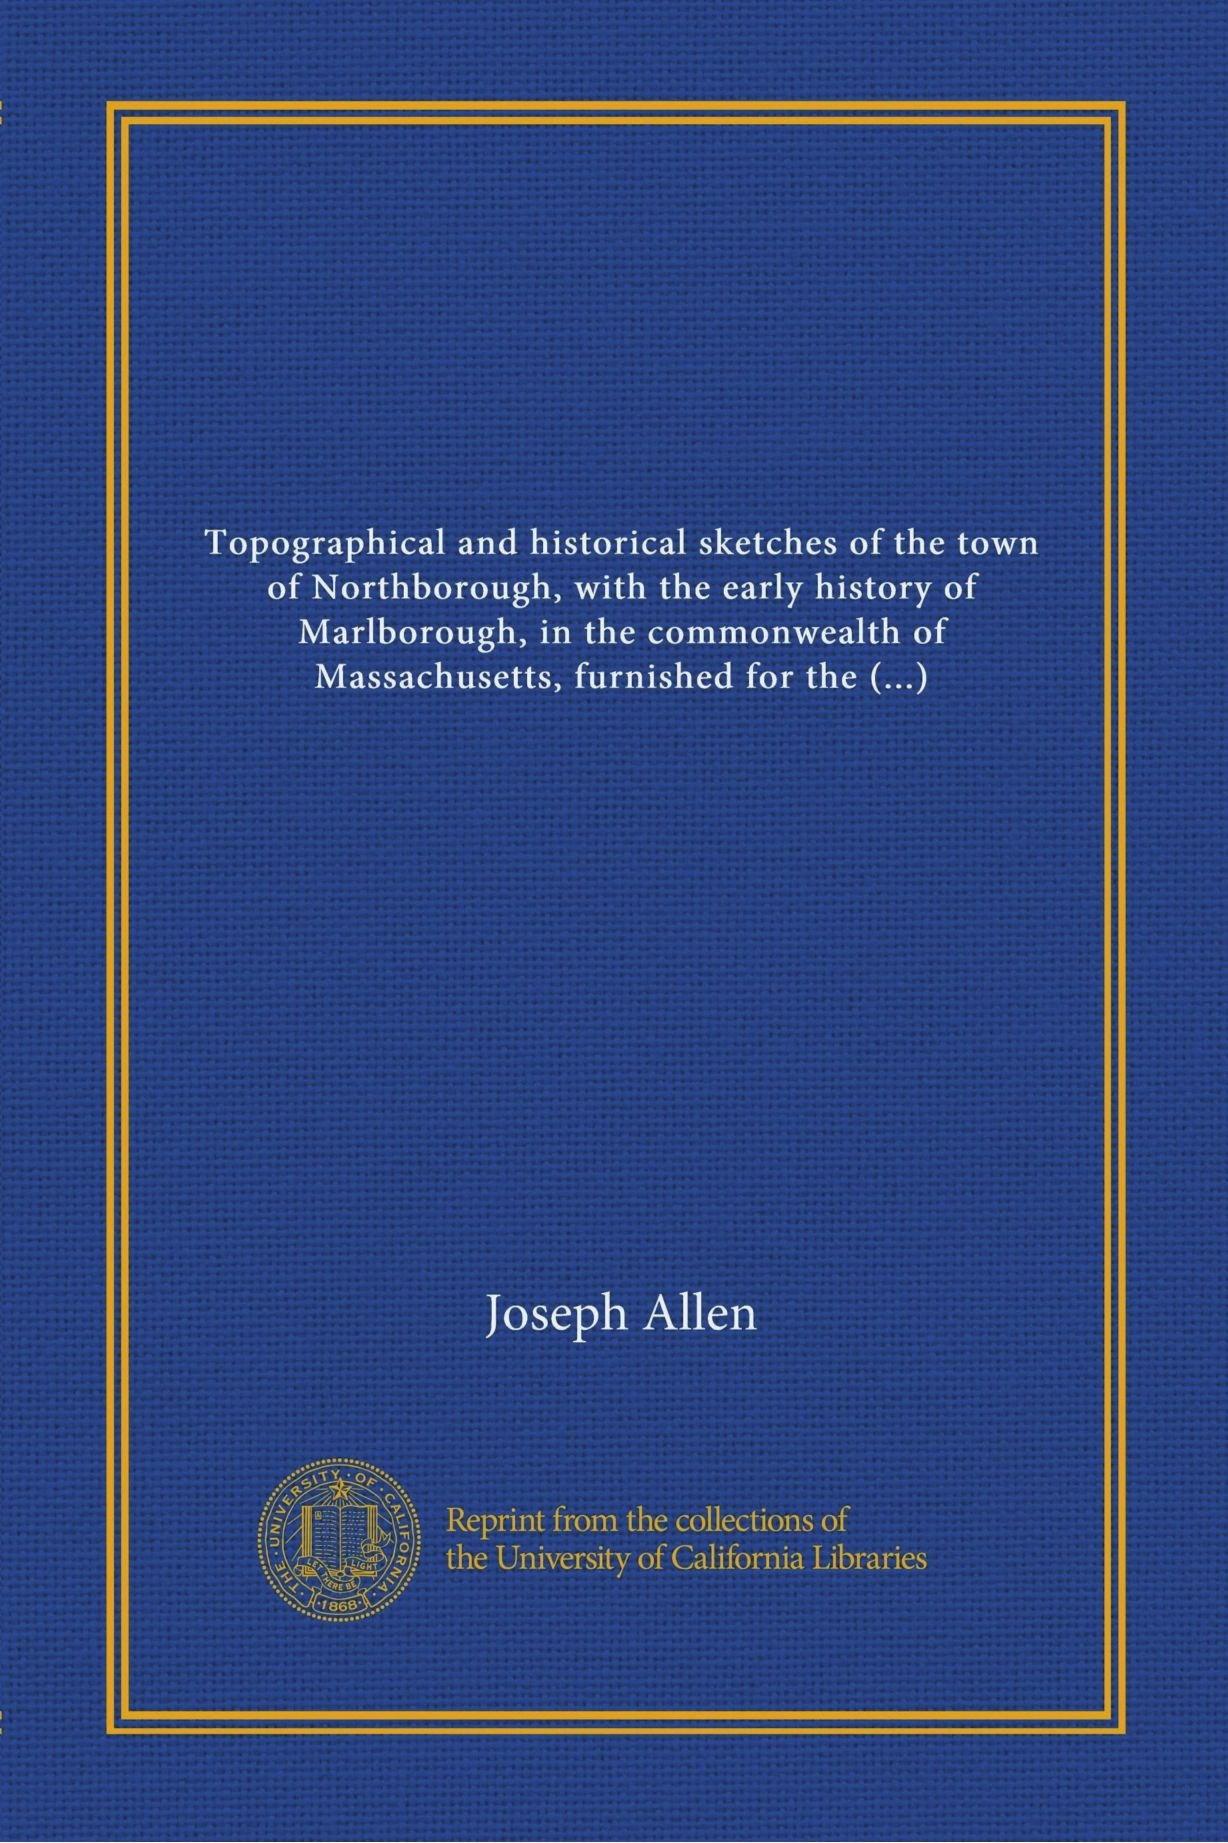 Read Online Topographical and historical sketches of the town of Northborough, with the early history of Marlborough, in the commonwealth of Massachusetts, furnished for the Worcester magazine pdf